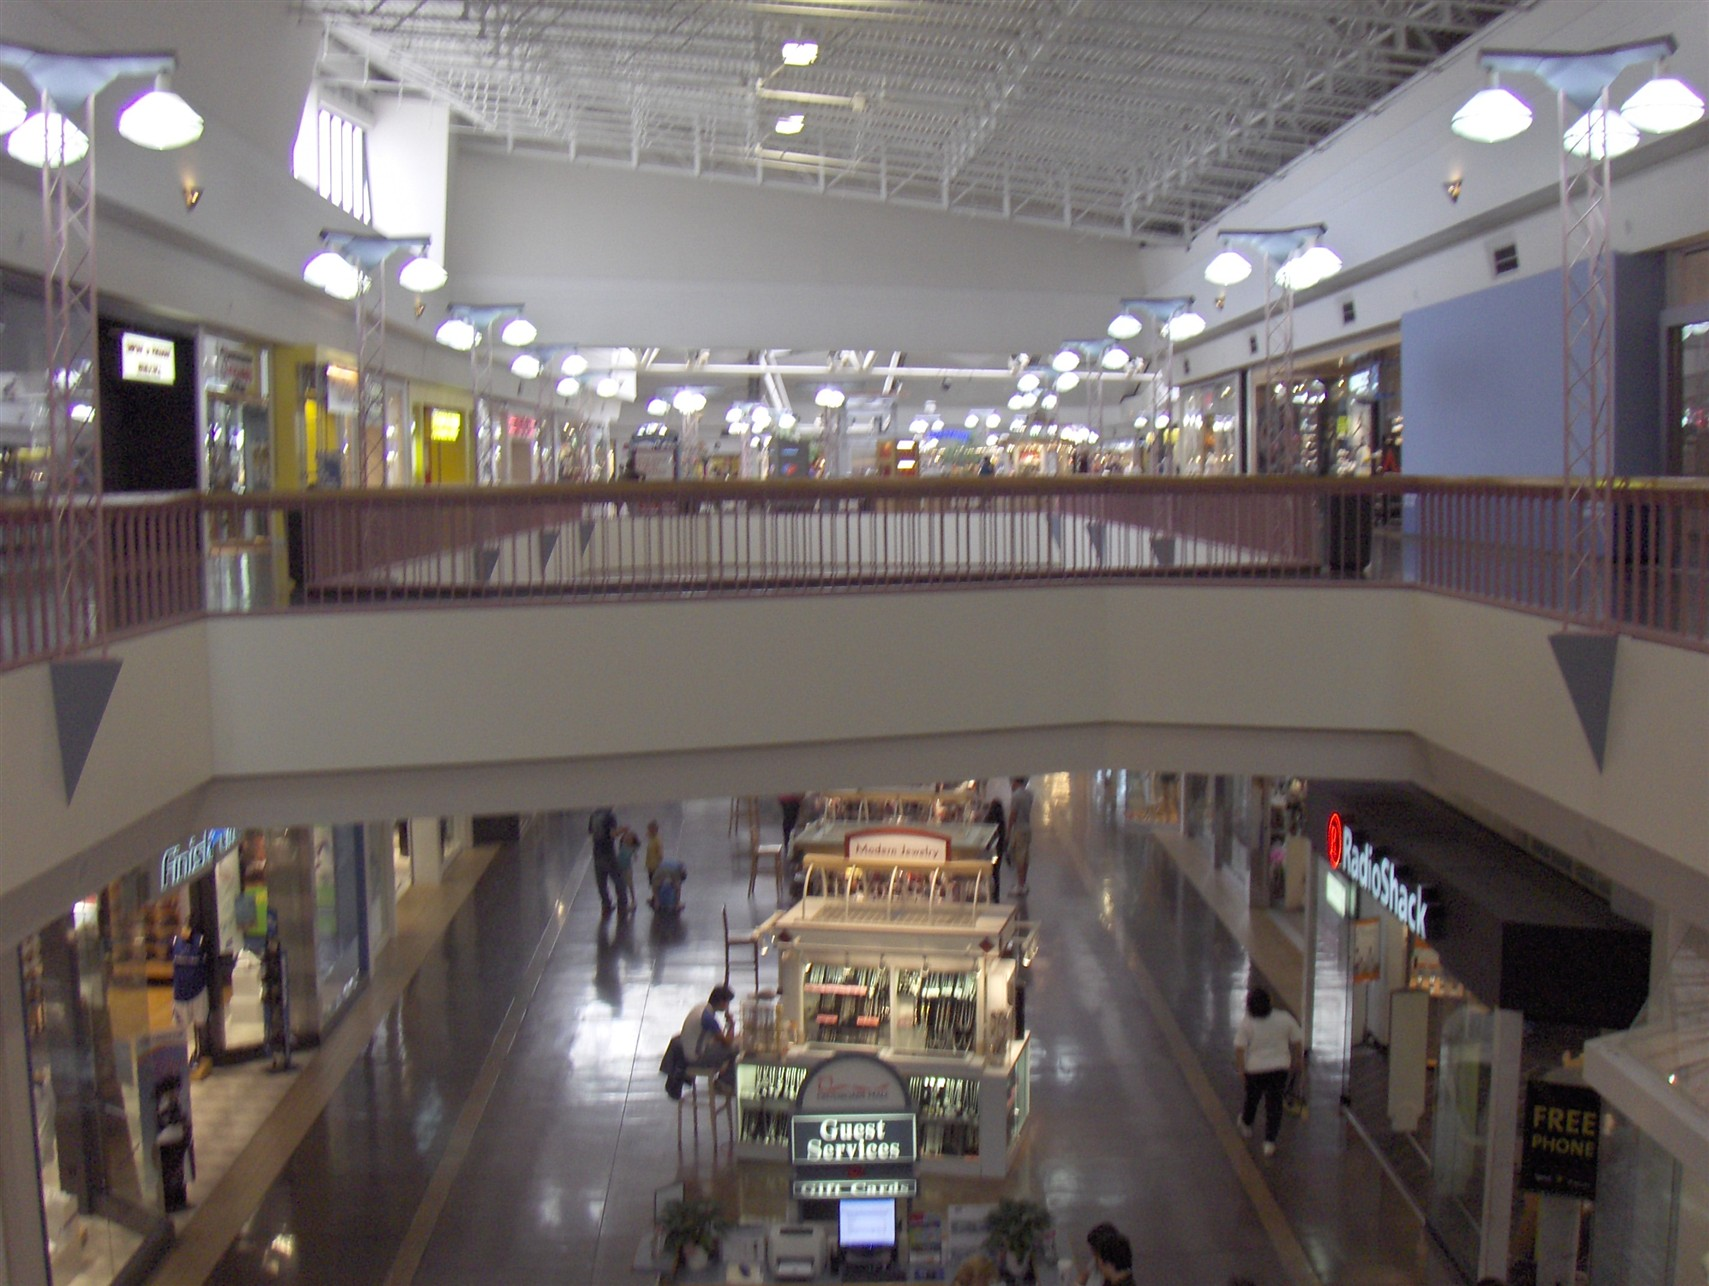 Oklahoma City's Best Shopping Malls. By Adam Knapp. Updated 01/15/ Share Pin Email The Oklahoma City metro area has several options for those wanting an enclosed shopping experience. Here is a list of the Oklahoma City shopping malls, with links more information on each. 01 of